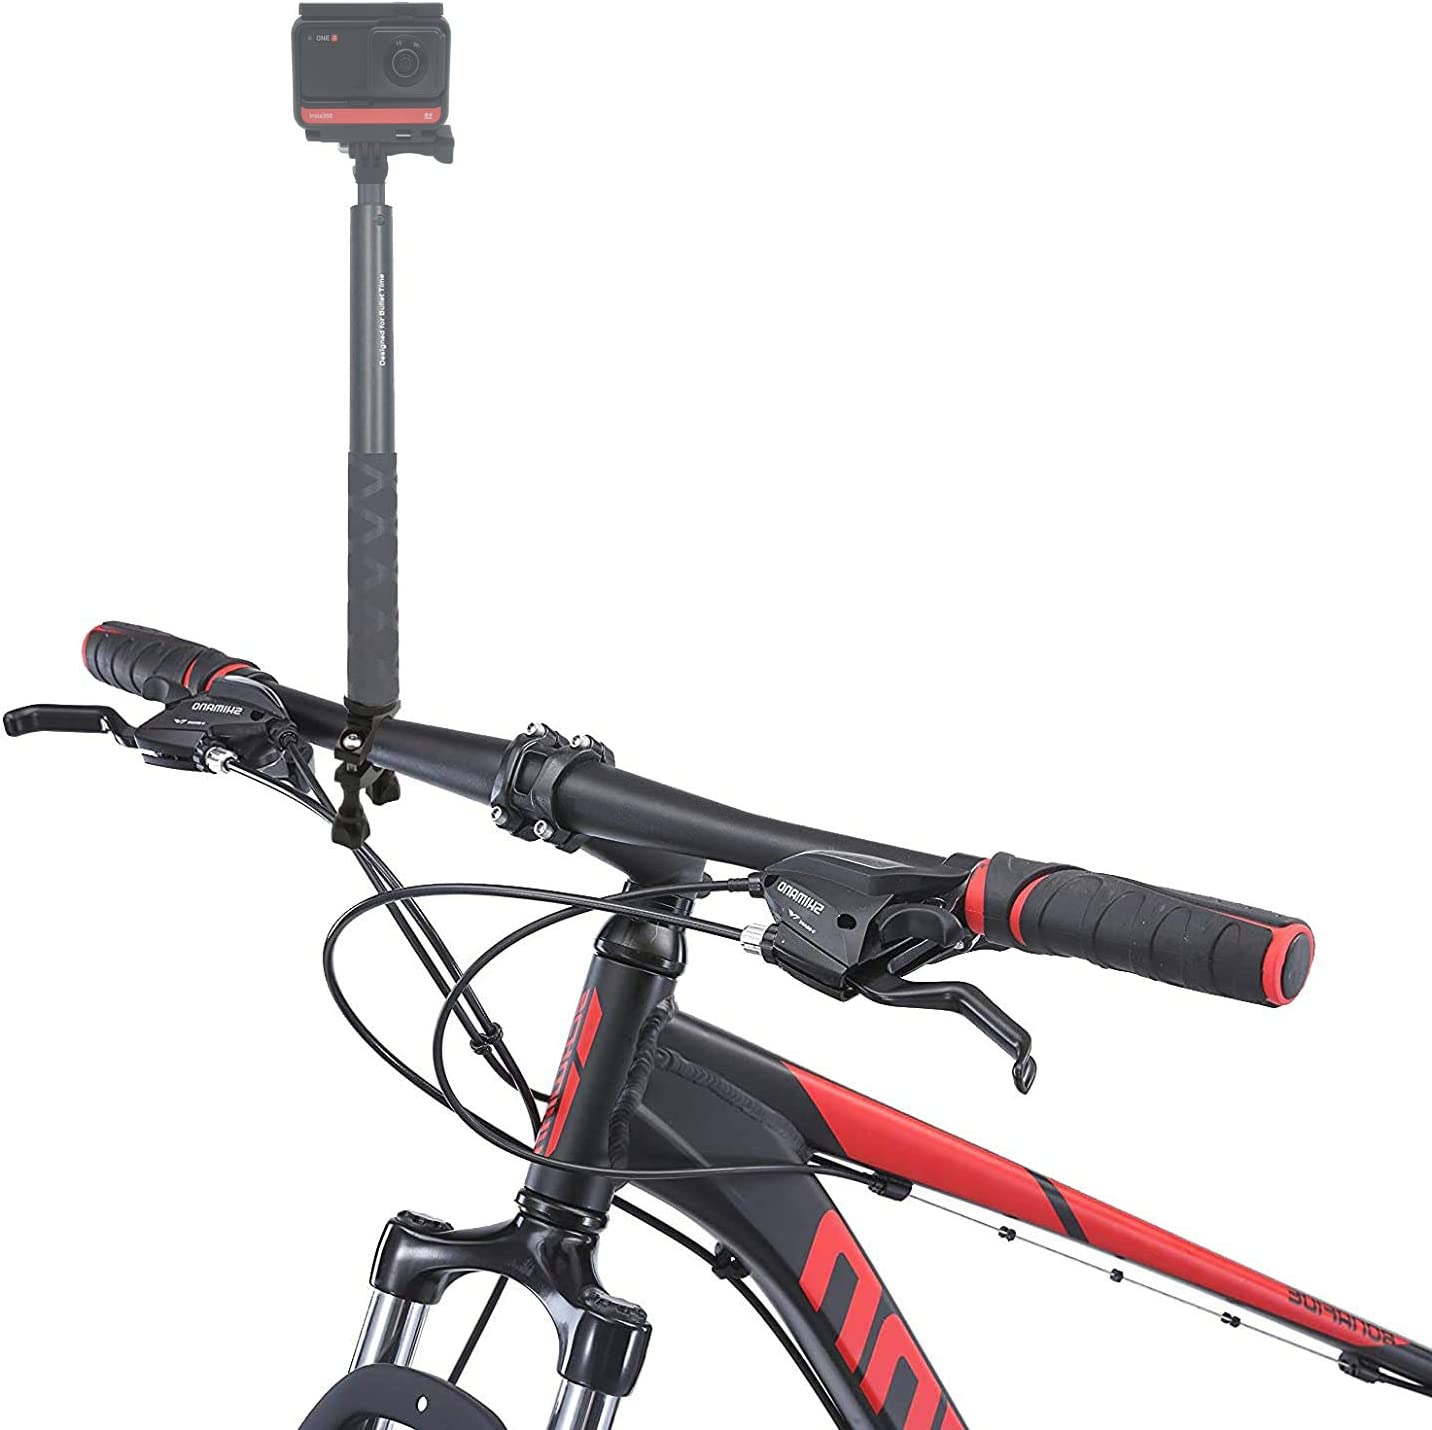 1/4 Handlebar Clamp Bicycle Mount Compatible with Insta360 One R and One X and Samsung Gear 360 and Ricoh Theta